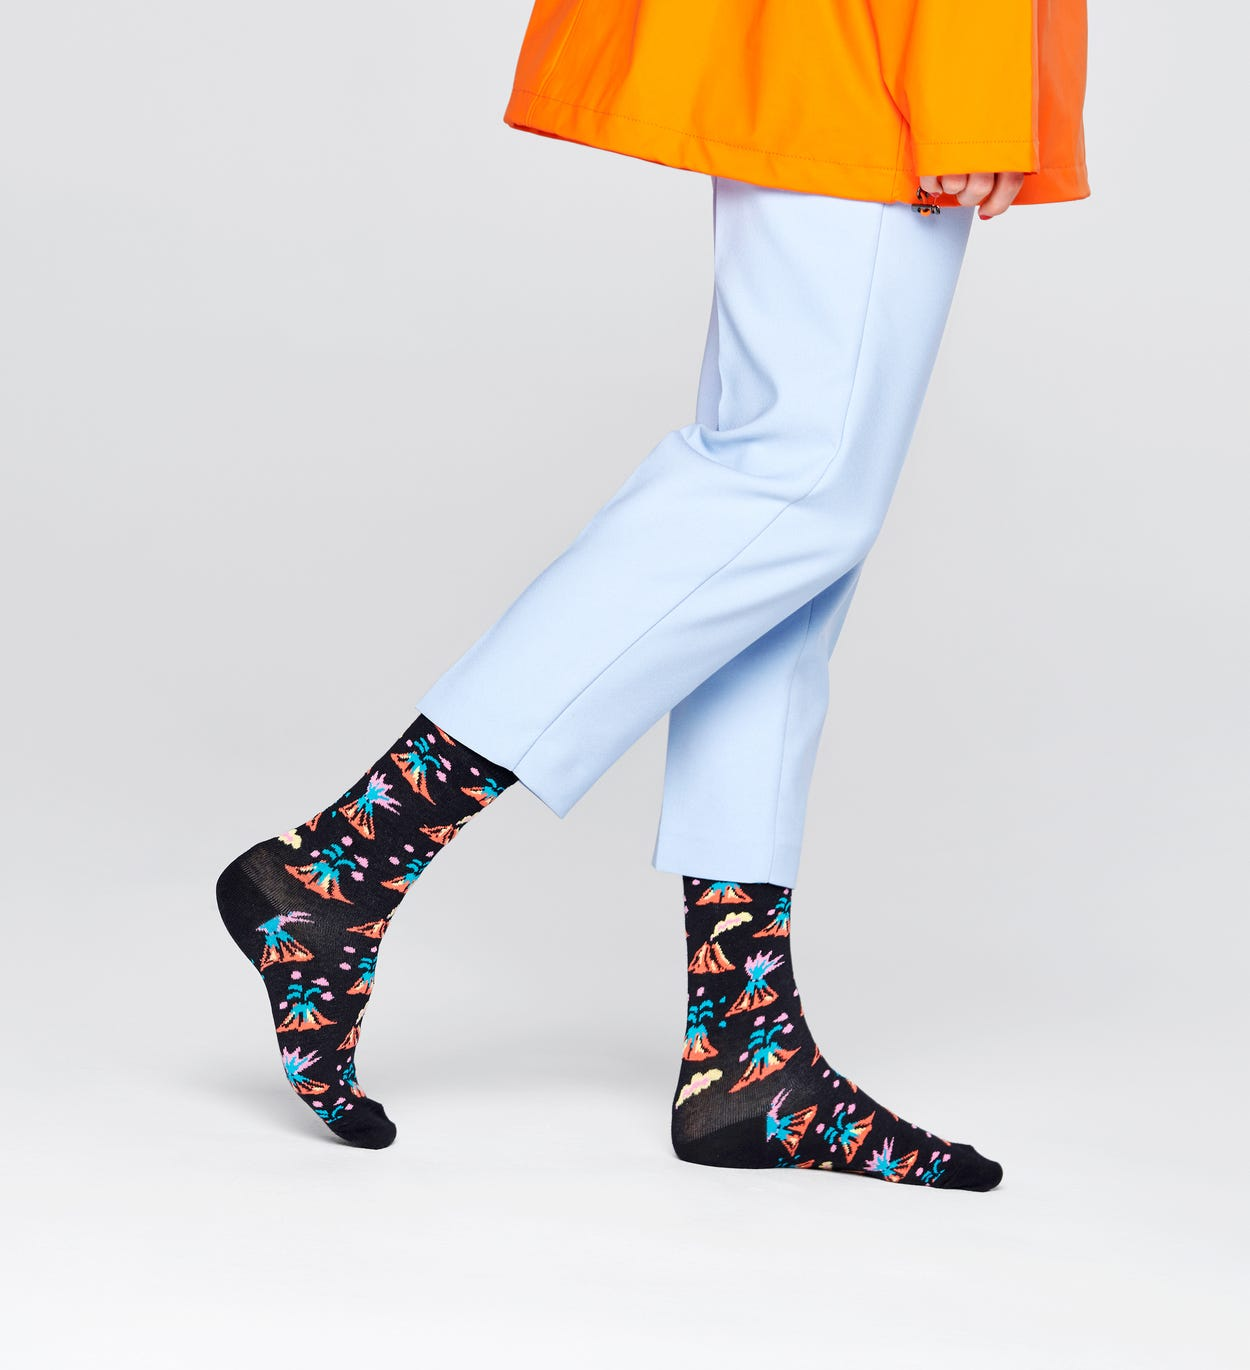 Volcano Socks, Black | Happy Socks